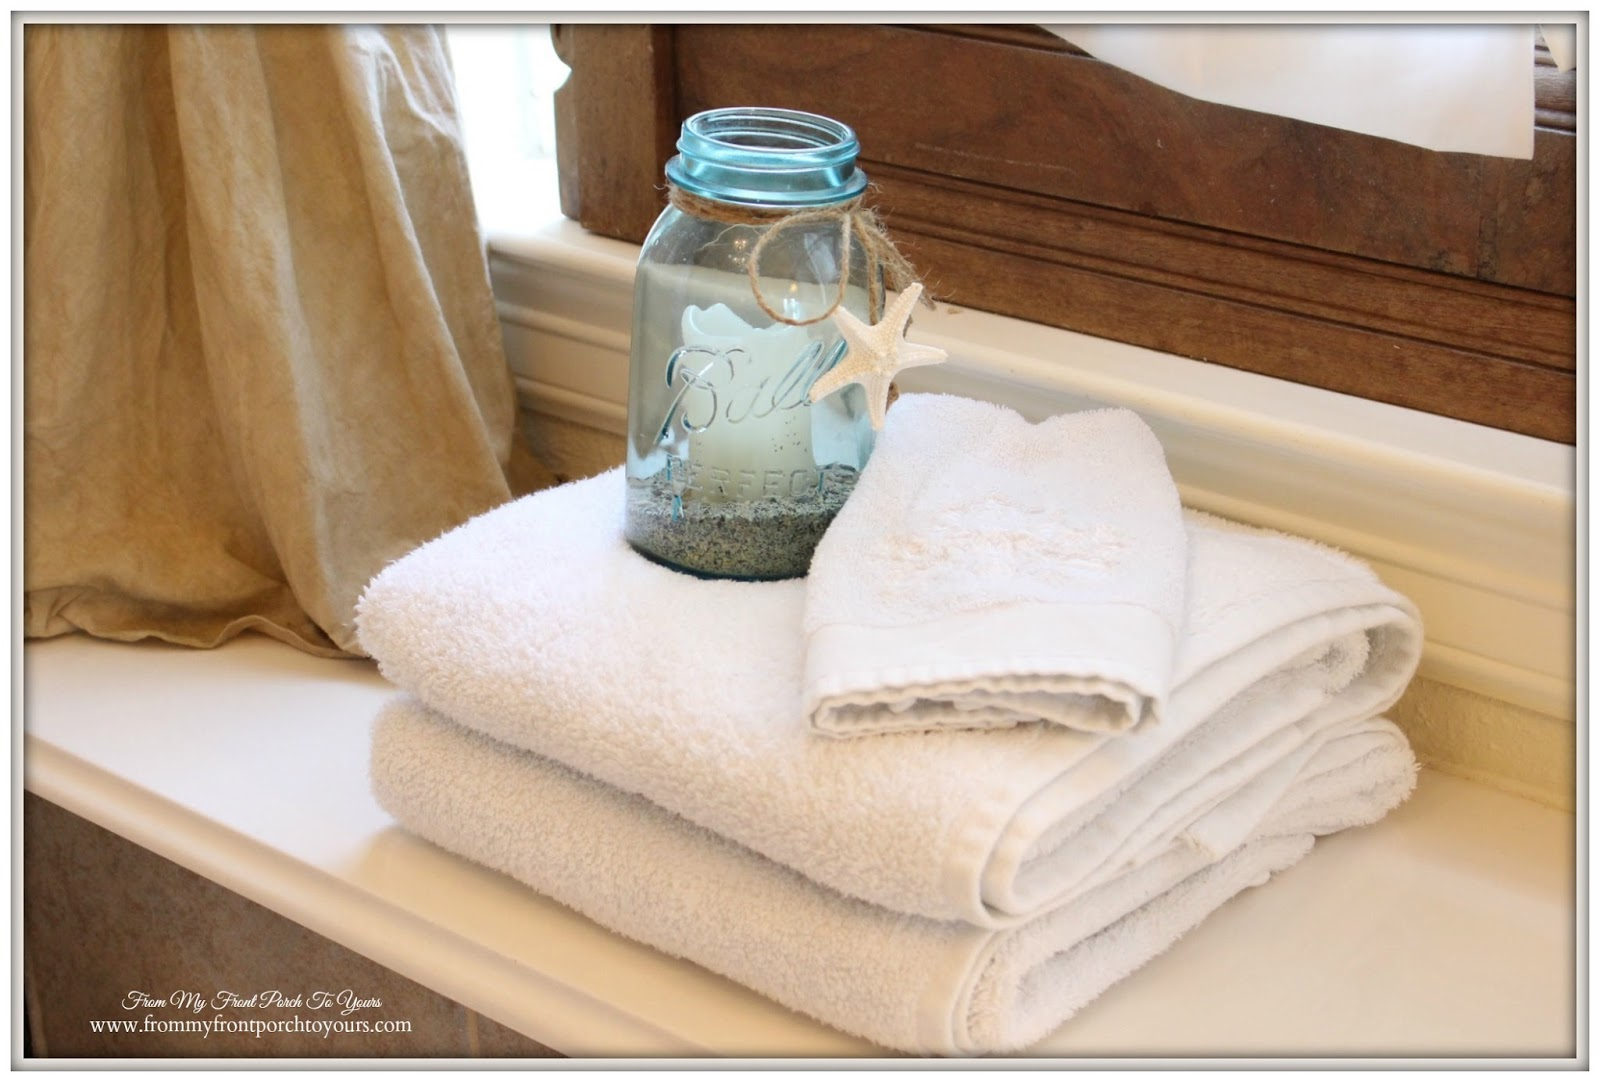 French country bathroom accessories - Vintage Blue Ball Canning Jar Home Decor French Country Farmhouse Master Bathroom